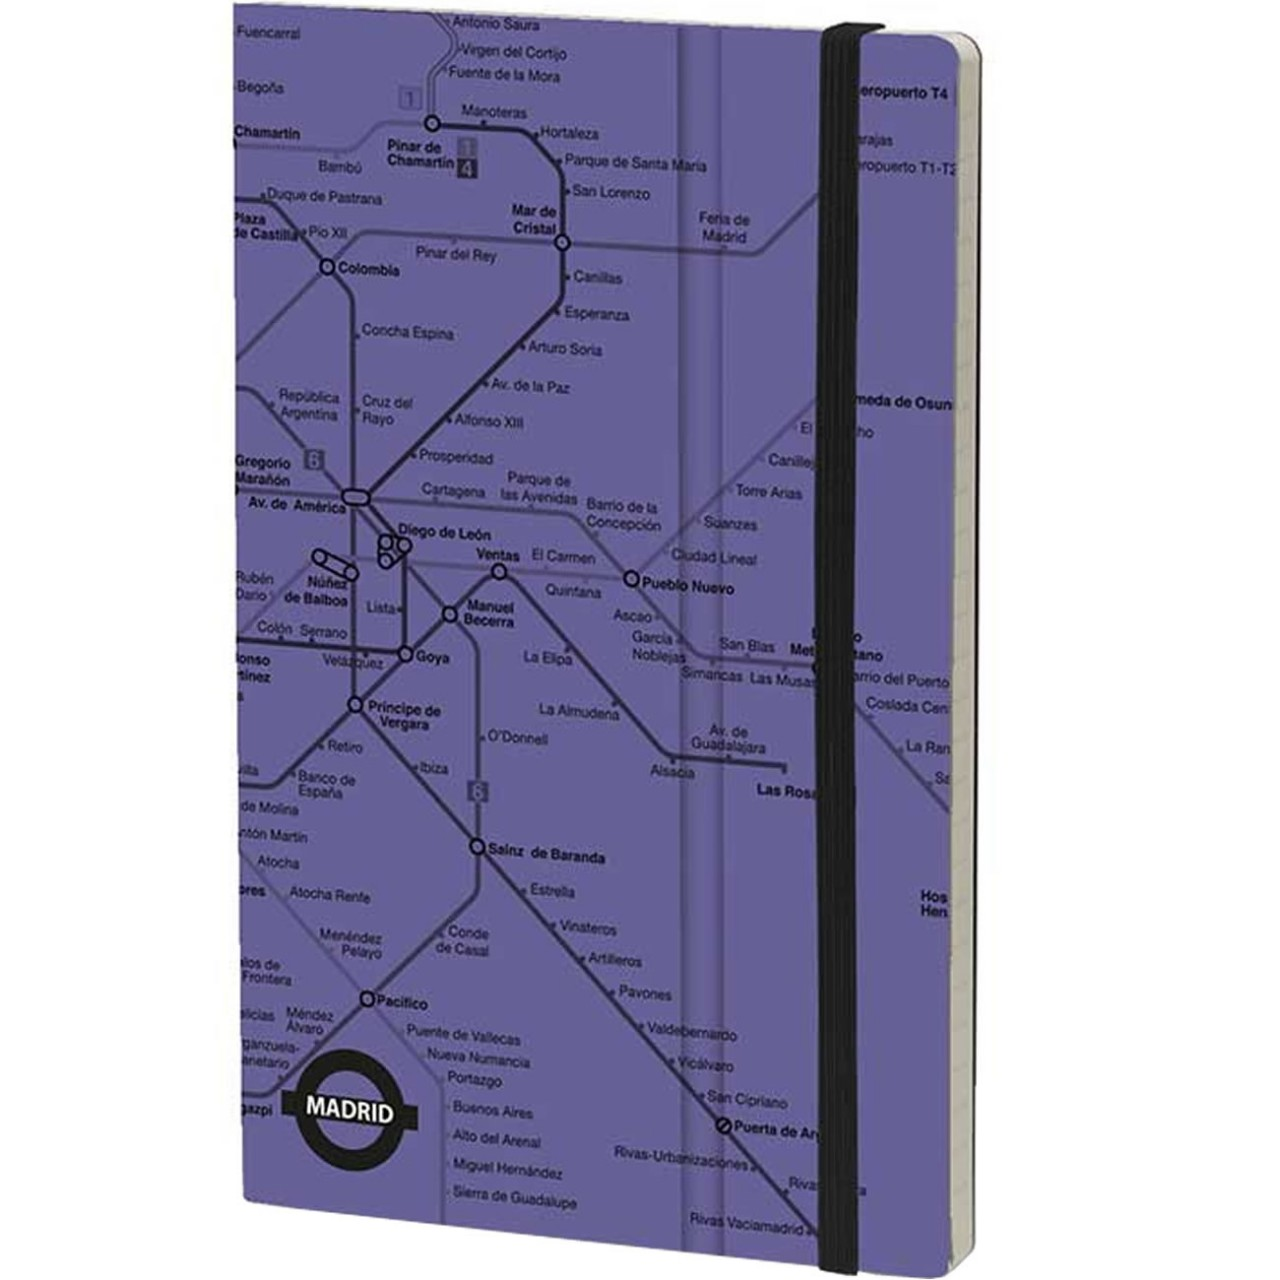 Stifflexible Notizbuch UNDERGROUND 19 x 25 cm 192 S., PURPLE (Madrid)